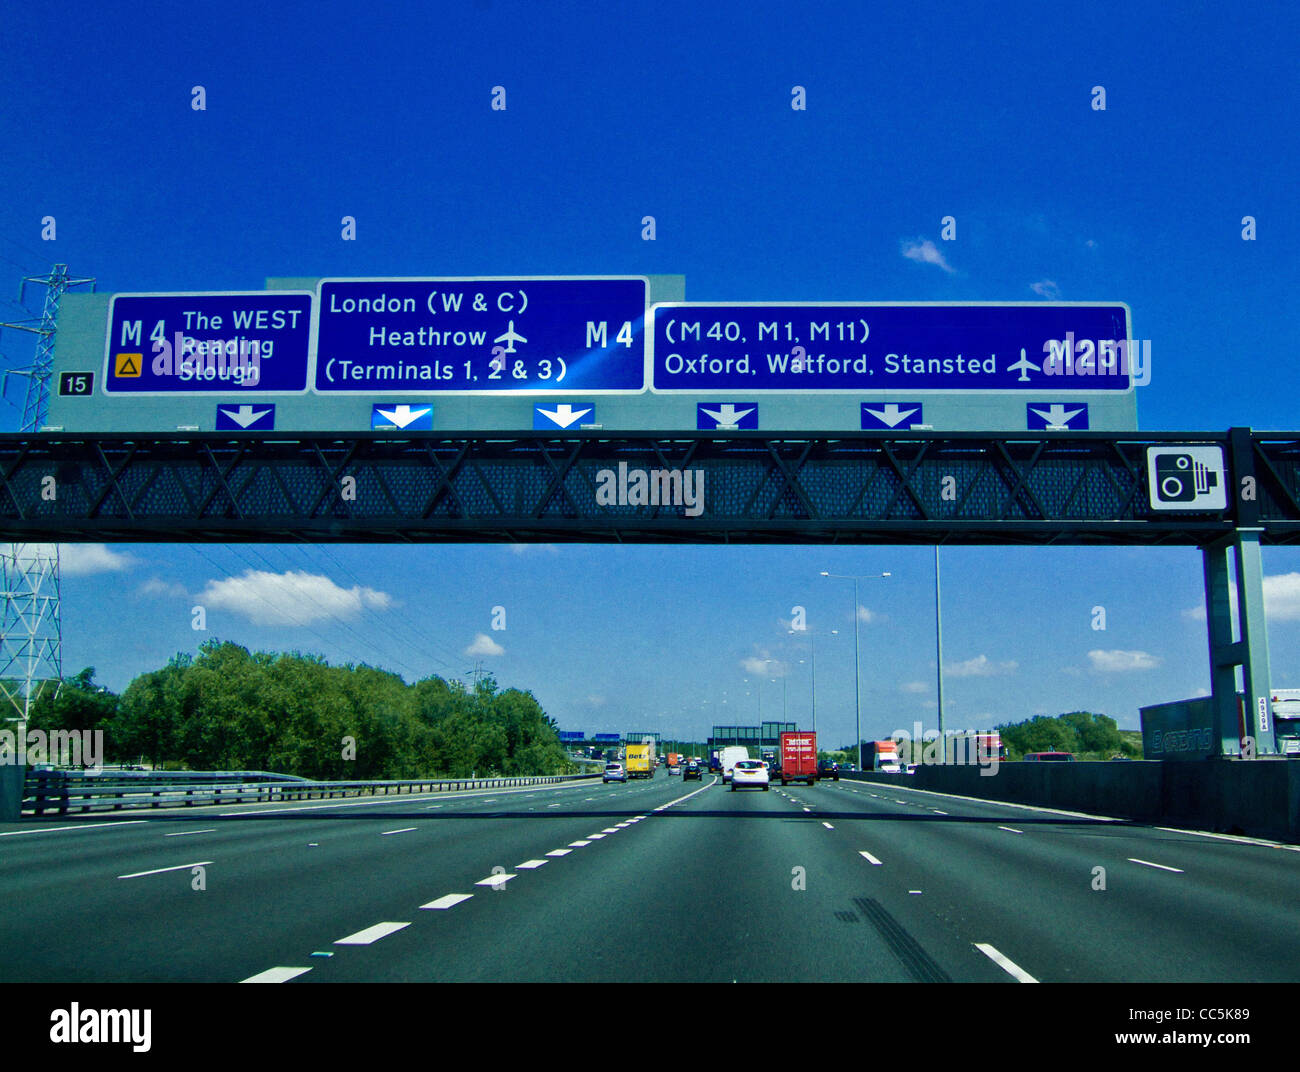 Traffic moving and clear road on M25 motorway, UK. - Stock Image